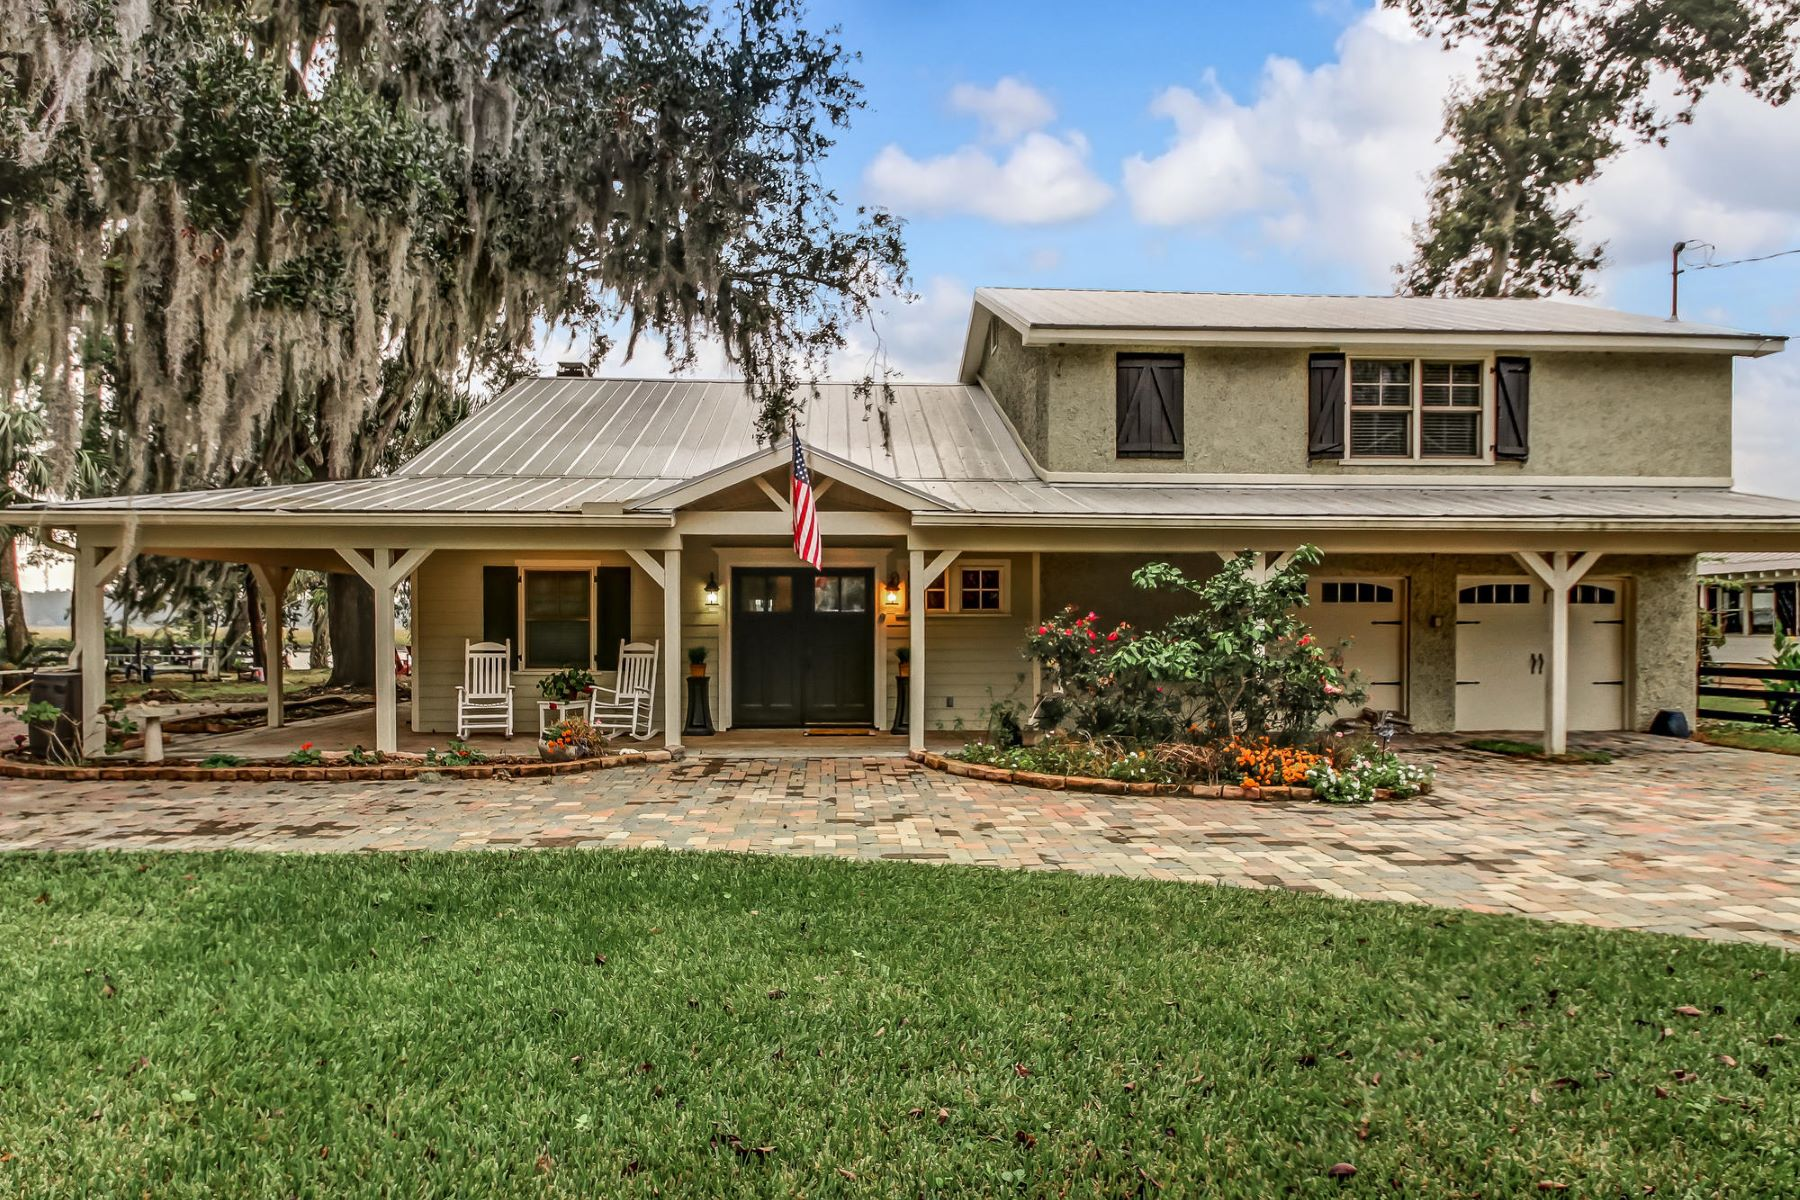 Single Family Home for Sale at 189 East 1st Street 189 East 1st Street Midway, Georgia 31320 United States